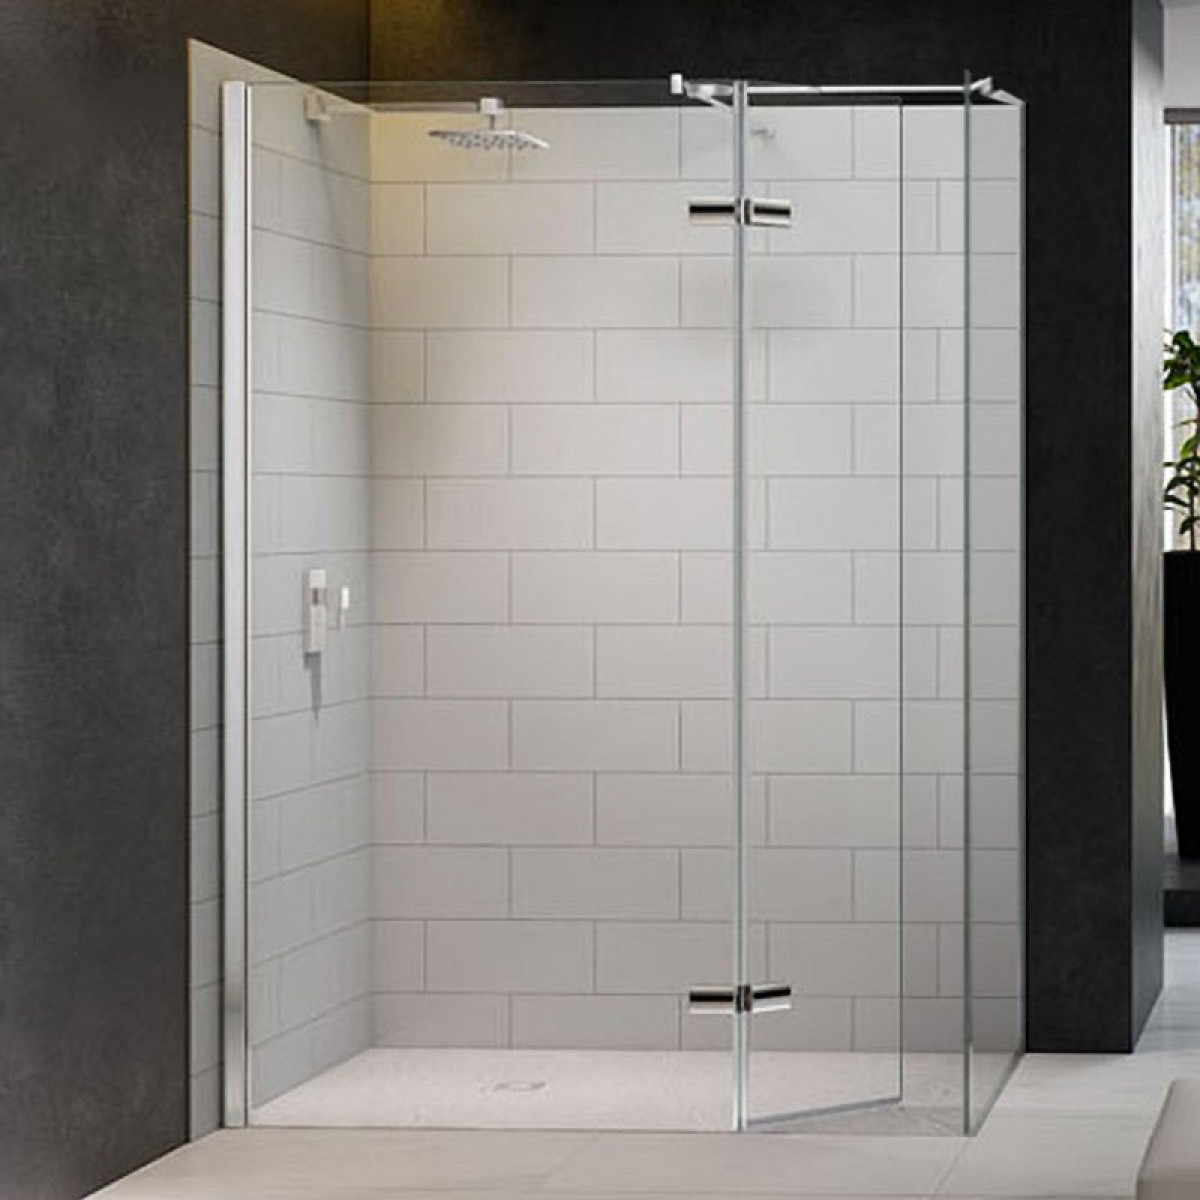 Merlyn 8 Series 1400 X 800mm Walk In Enclosure With Hinged Swivel Panel